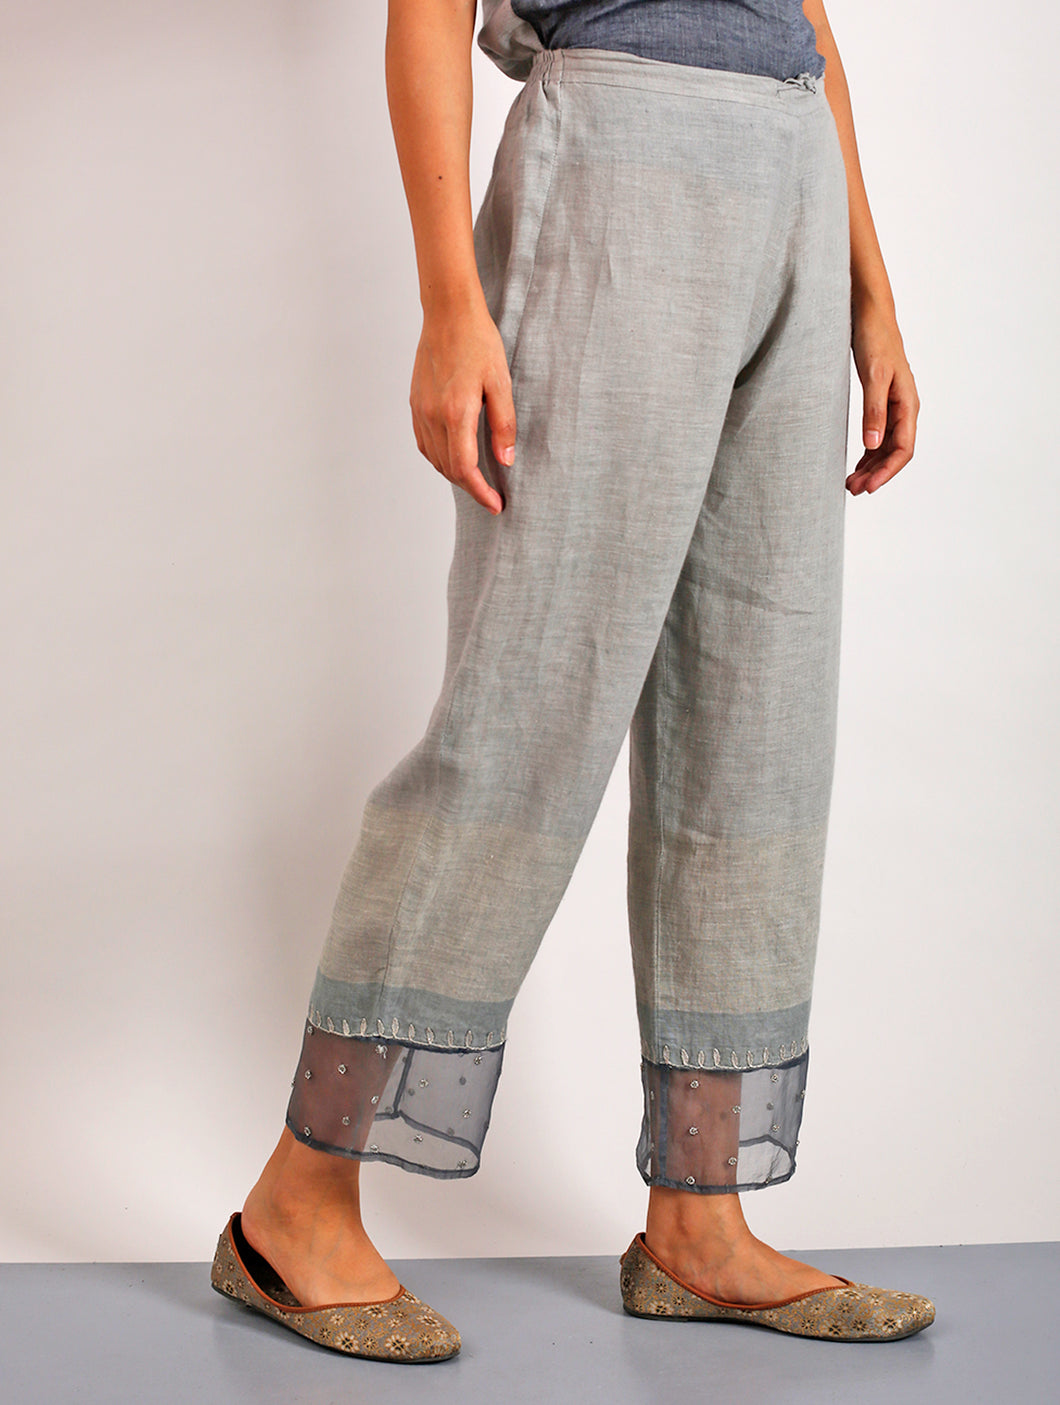 Sanoh Embroidered Linen Grey Pants